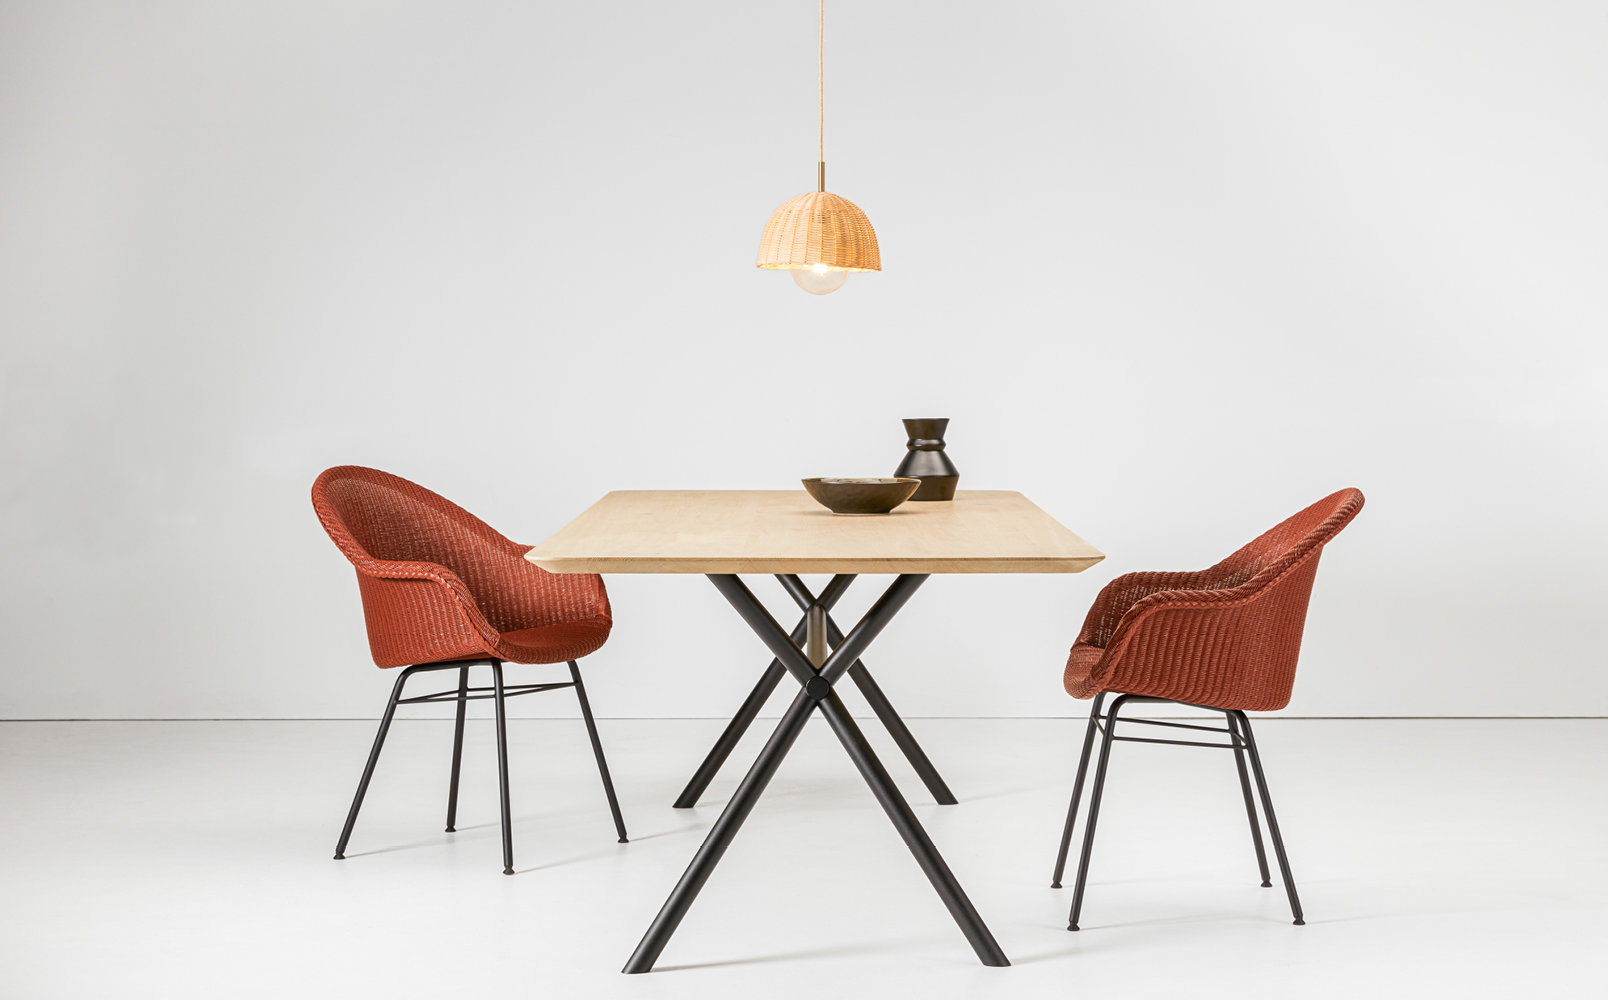 vincent-sheppard-elias-dining-table-avril-HB-dining-chair-luna-lamp